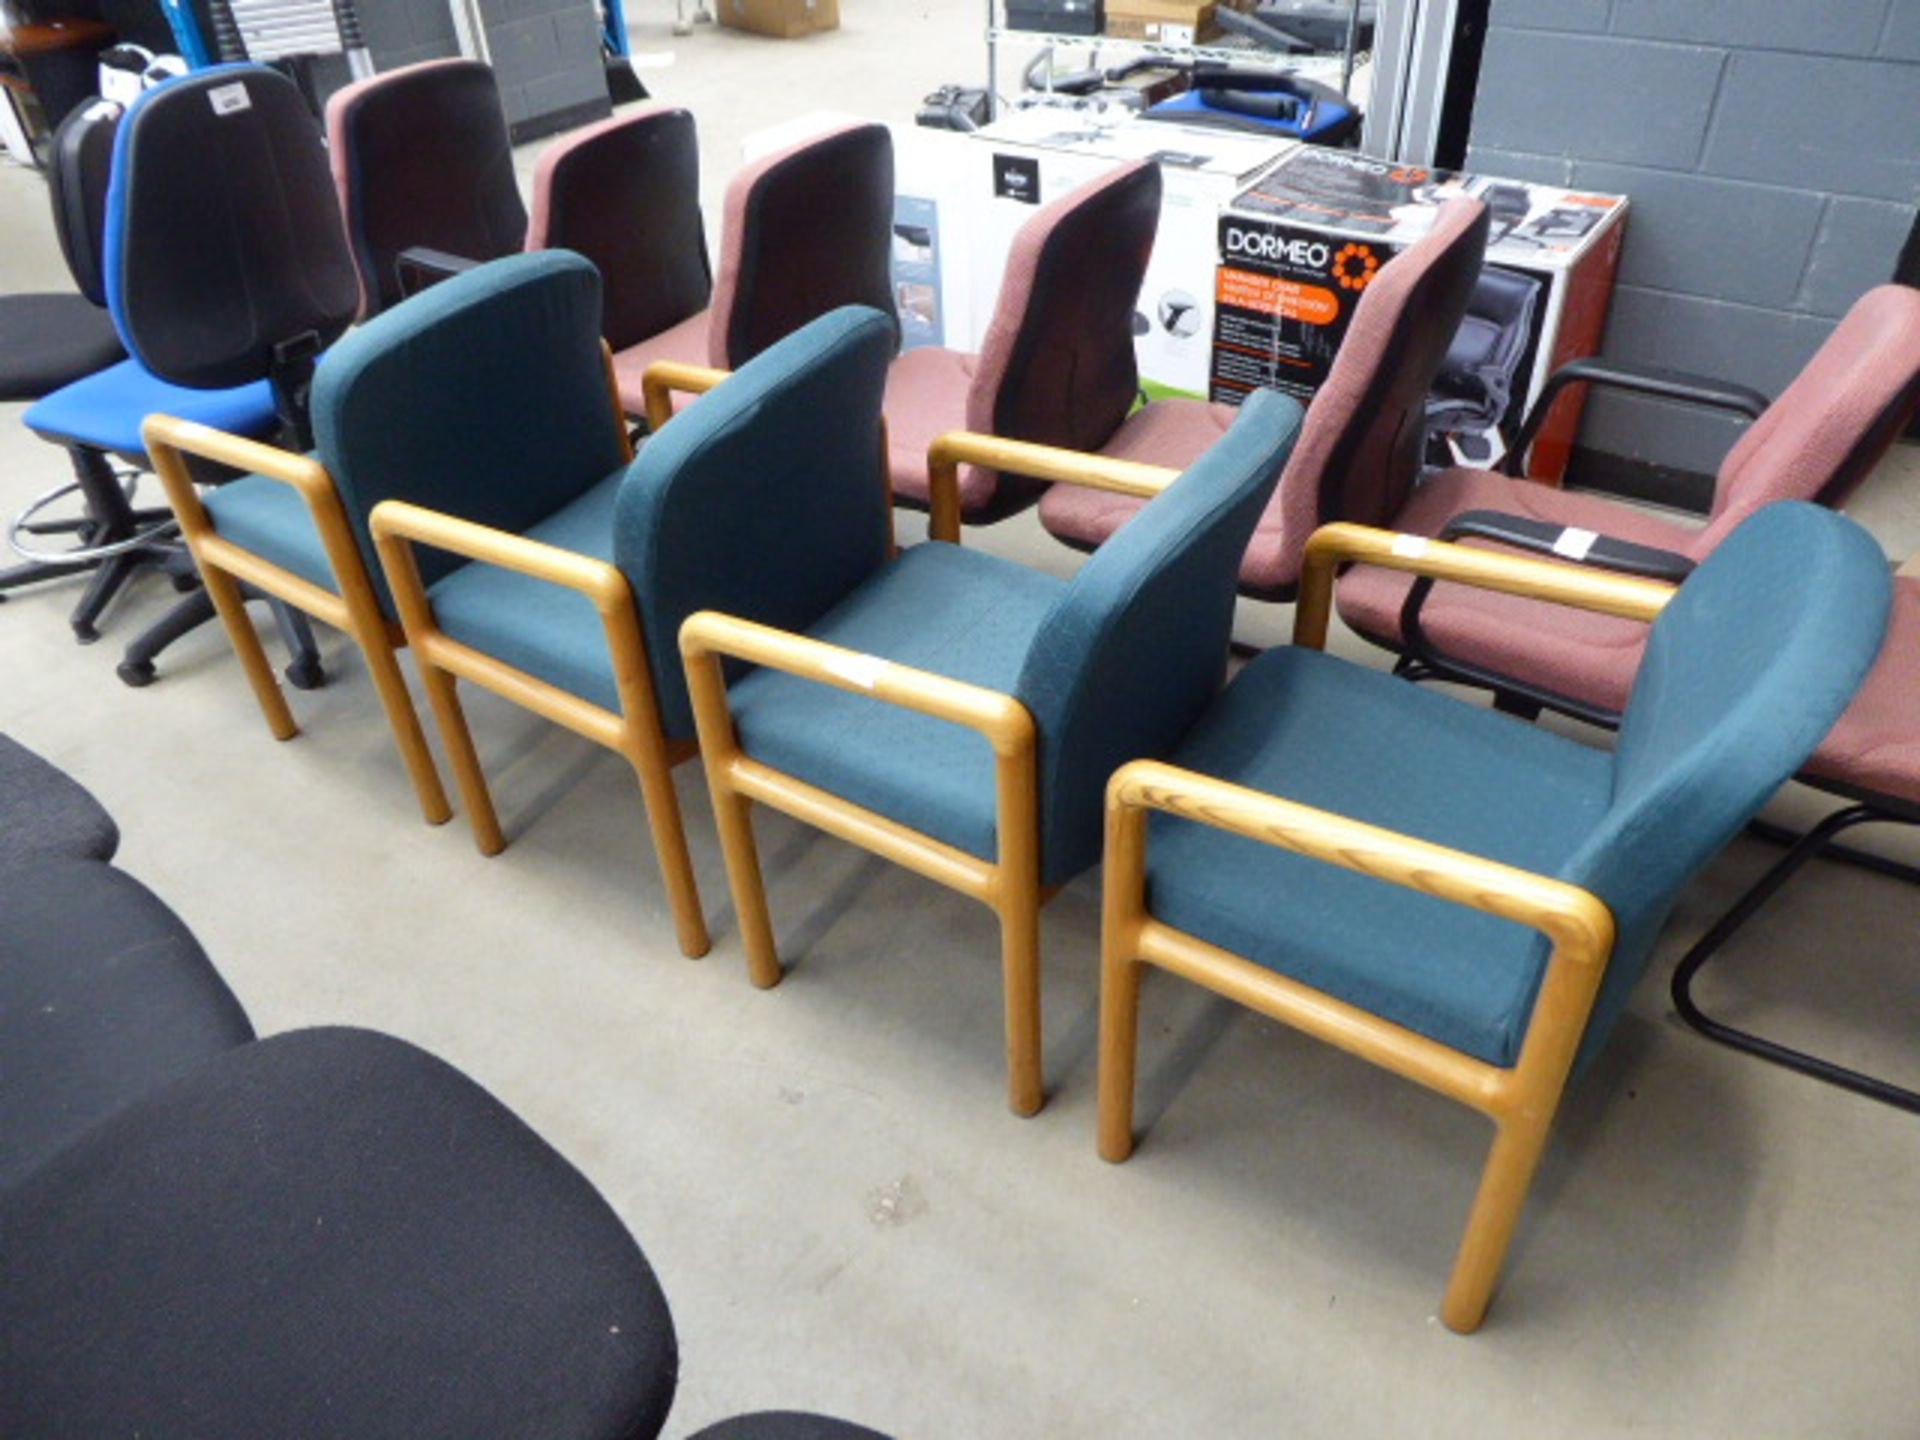 Lot 4254 - 4 green wooden framed chairs